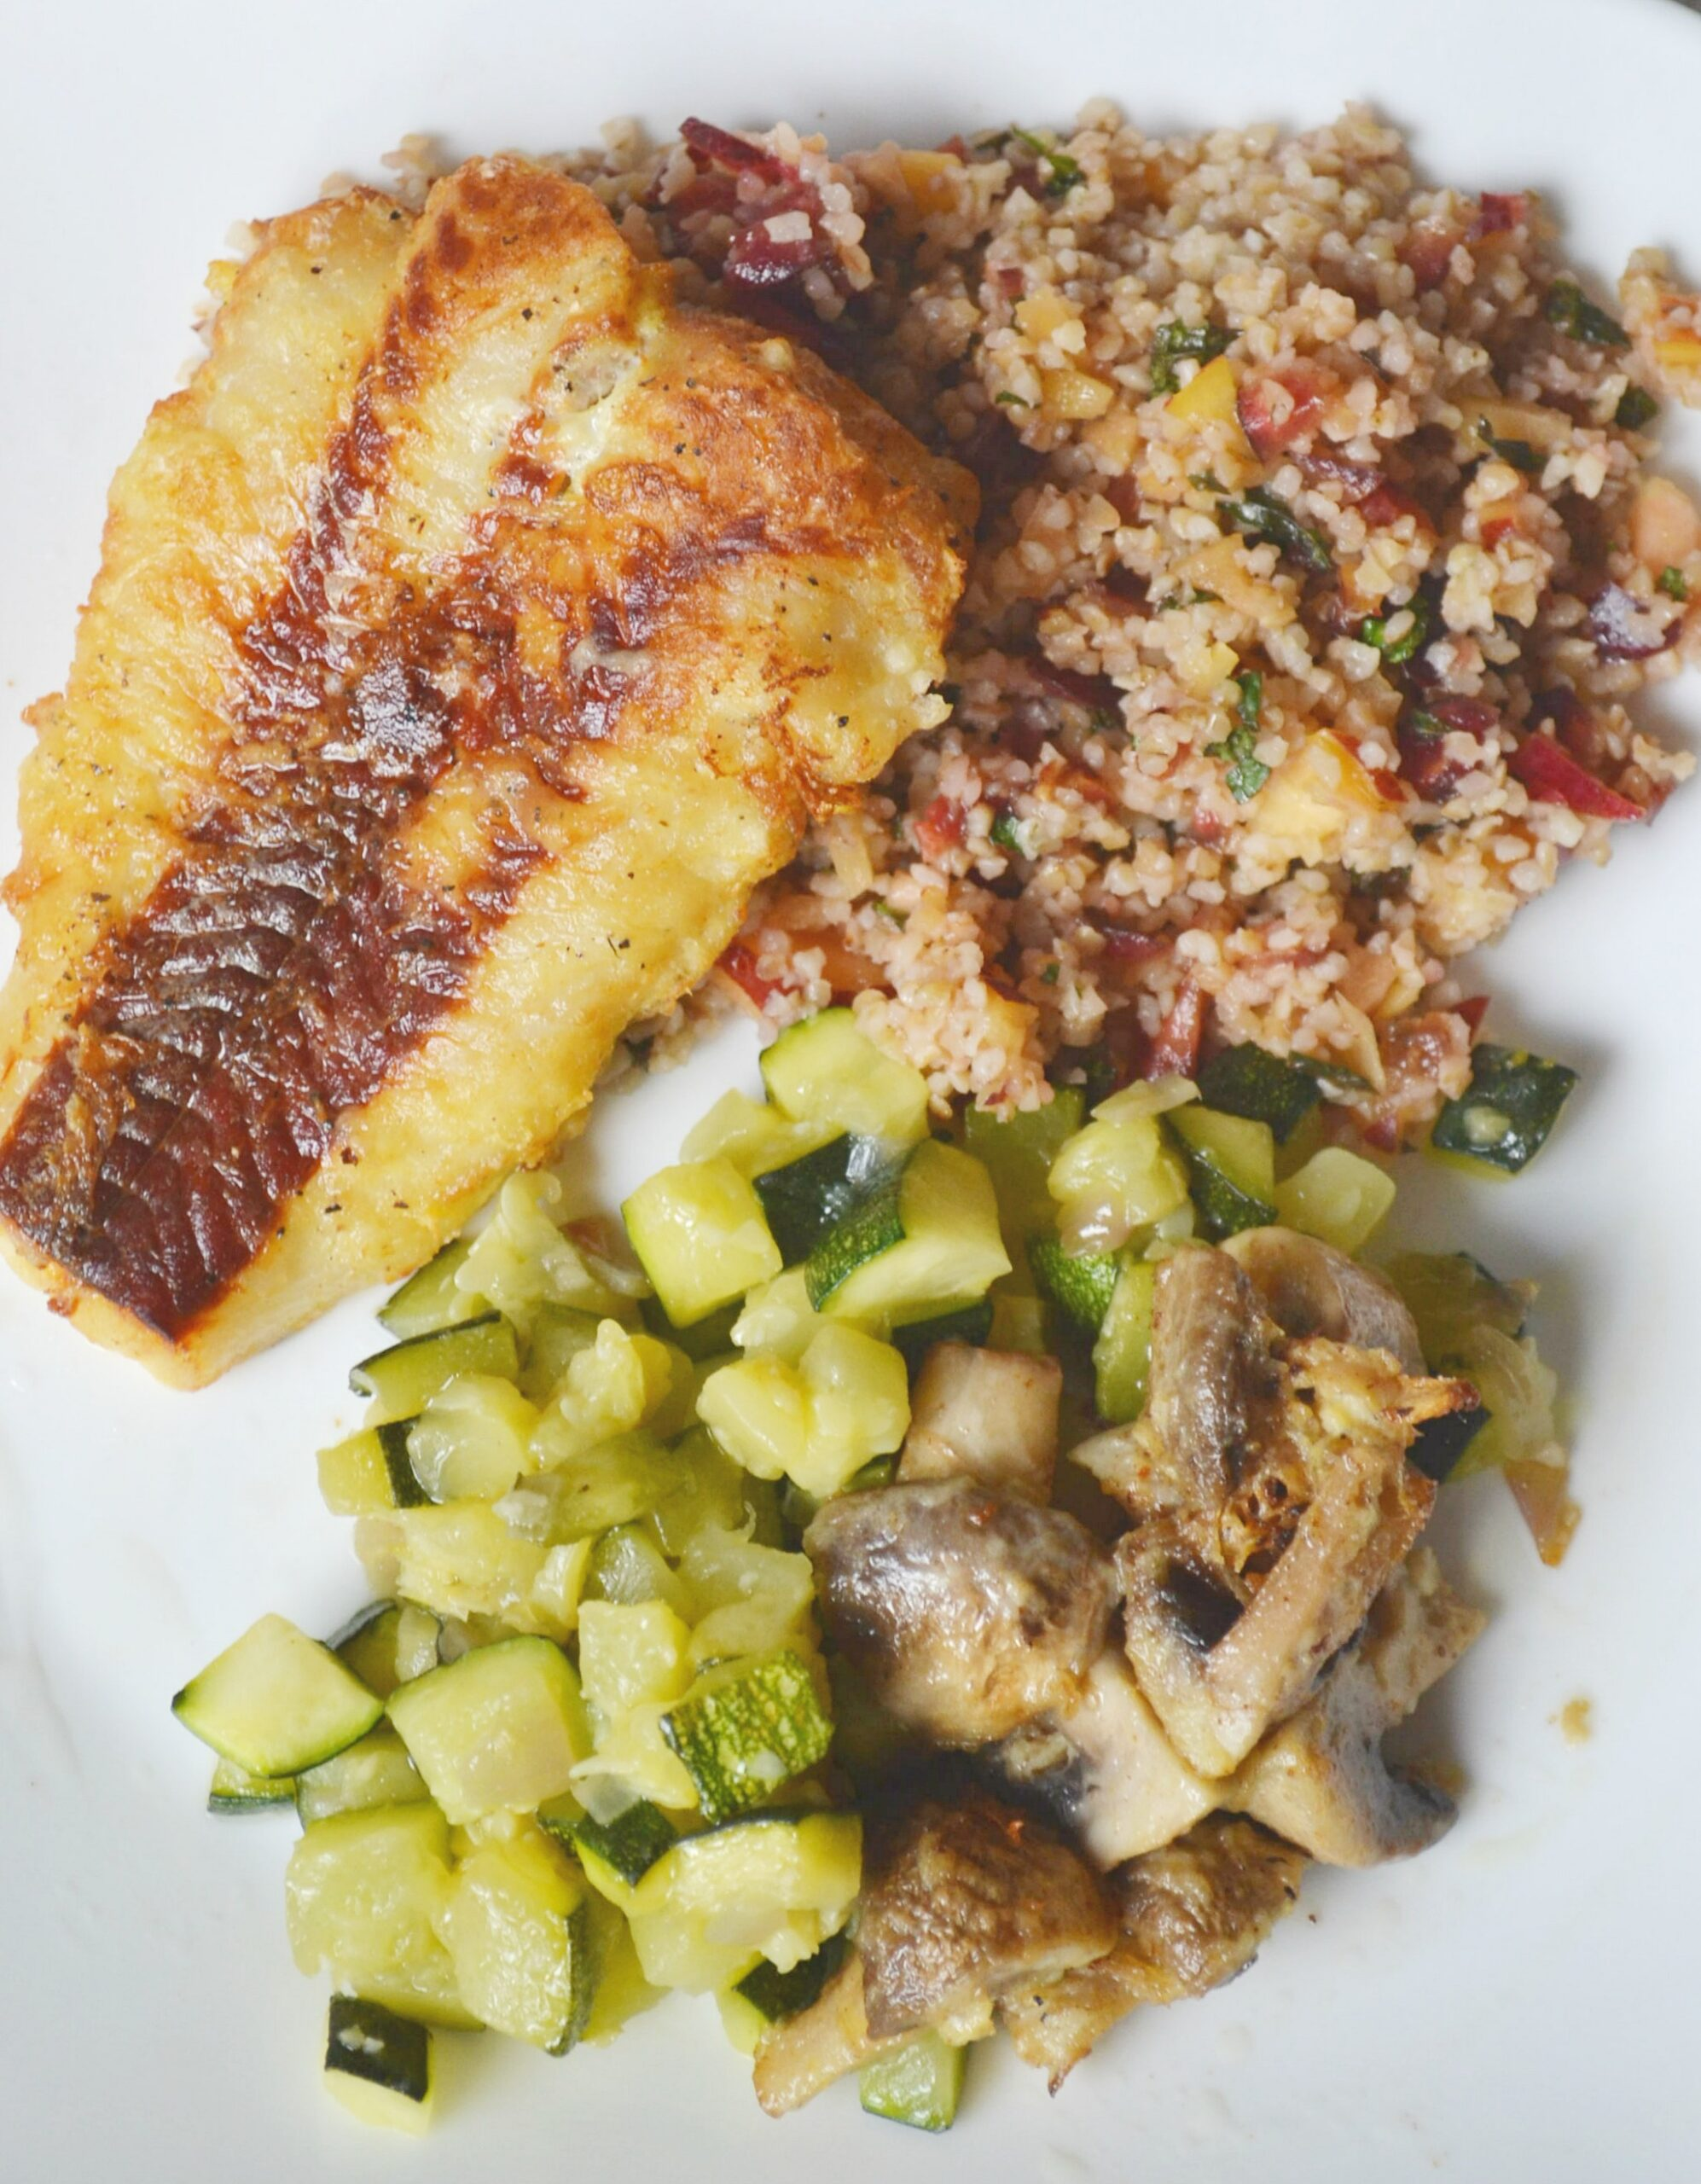 Fresh Fish sided with a bulgur tabbouleh salad